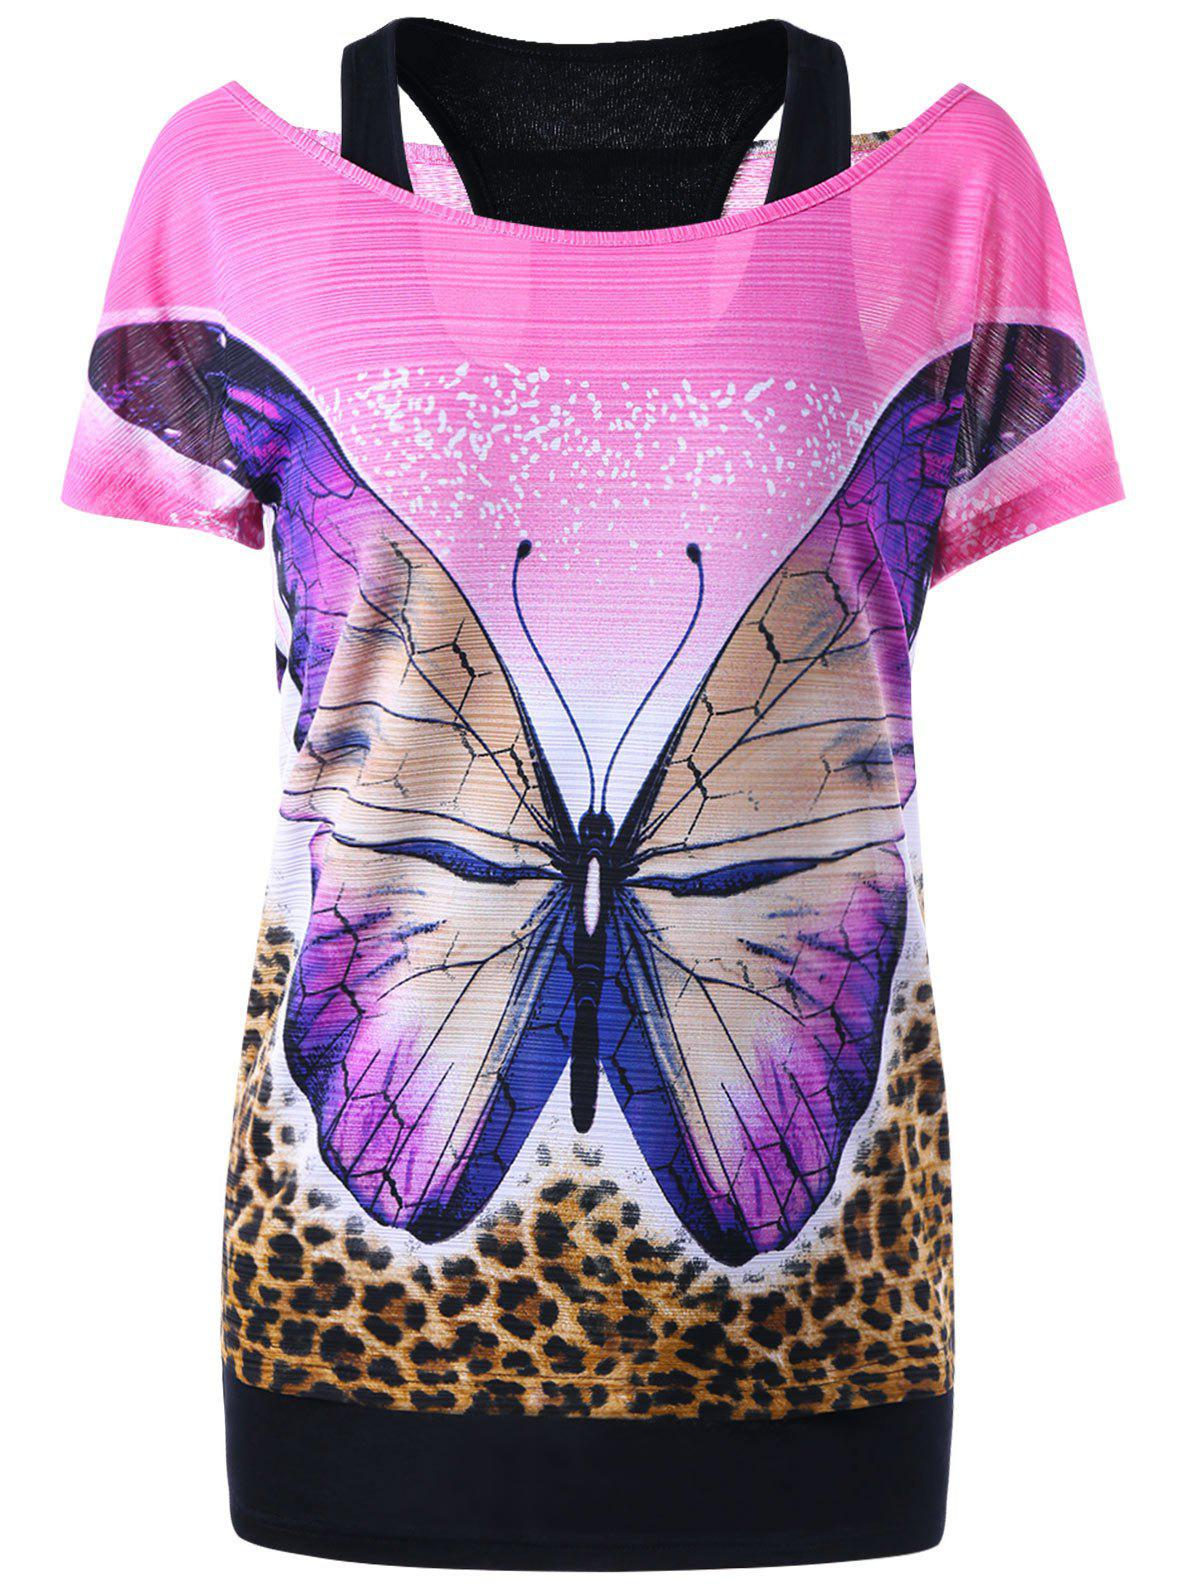 Racerback Tank Top and Butterfly Tee sequins graphic racerback tank top